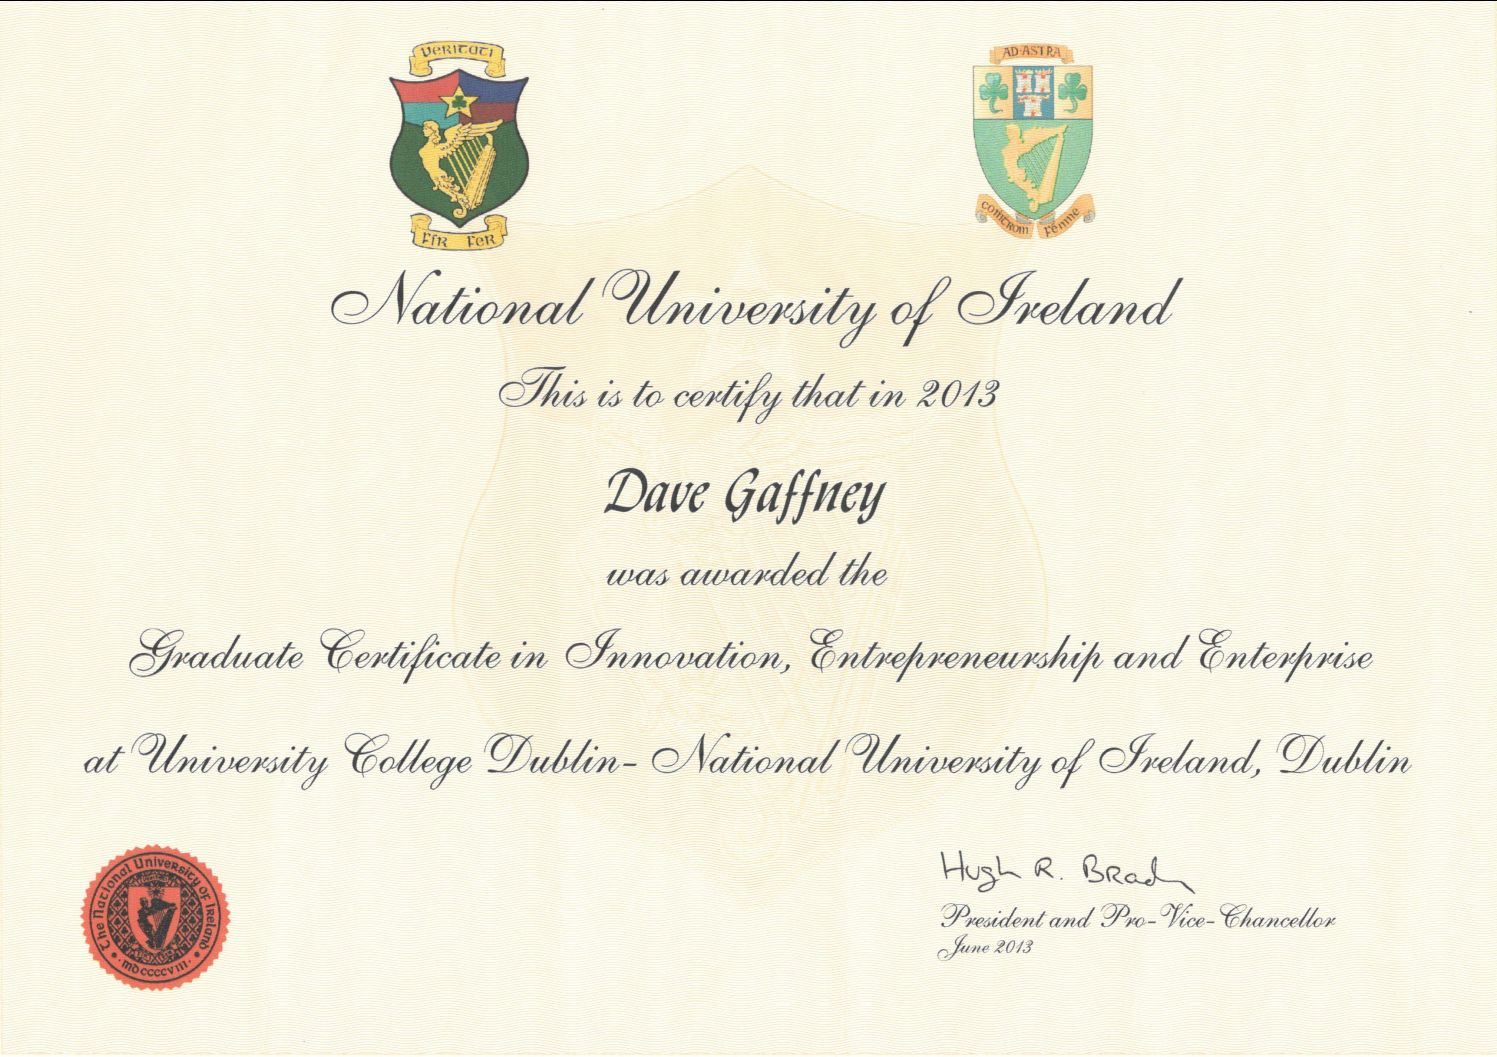 See Certificate